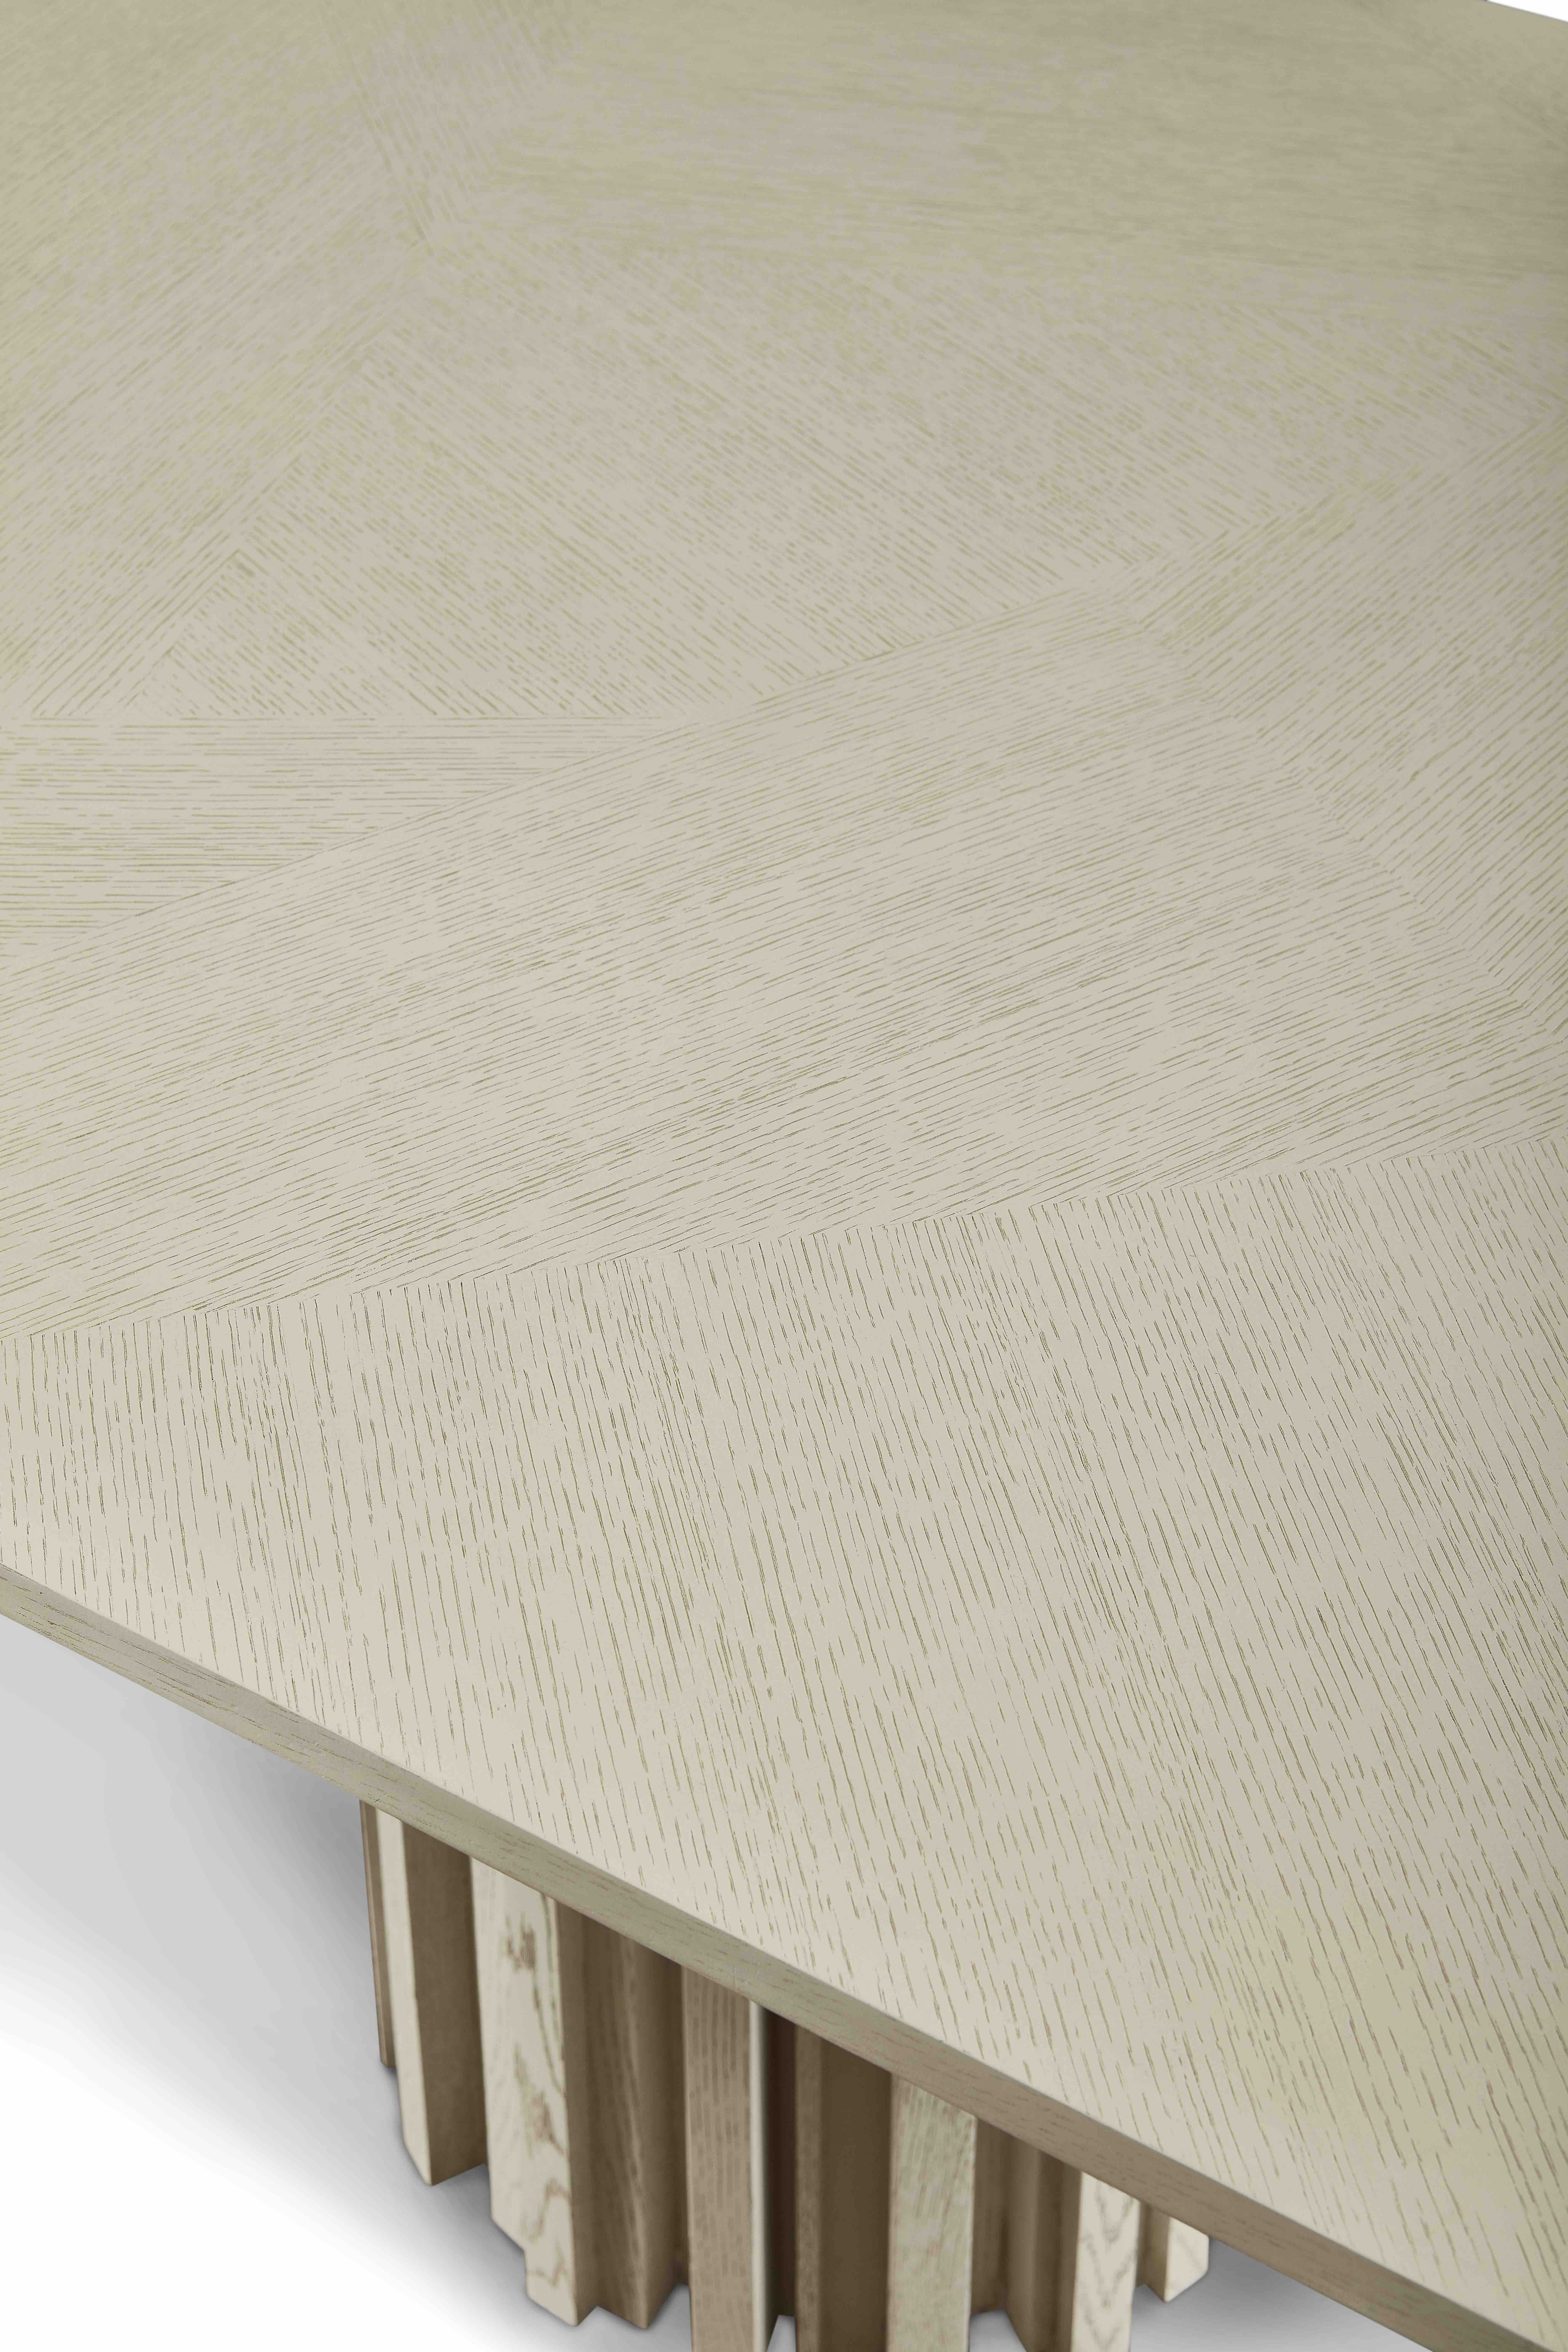 Baker_products_WNWN_huxley_dining_table_BAA3036_RECT_DETAIL-5